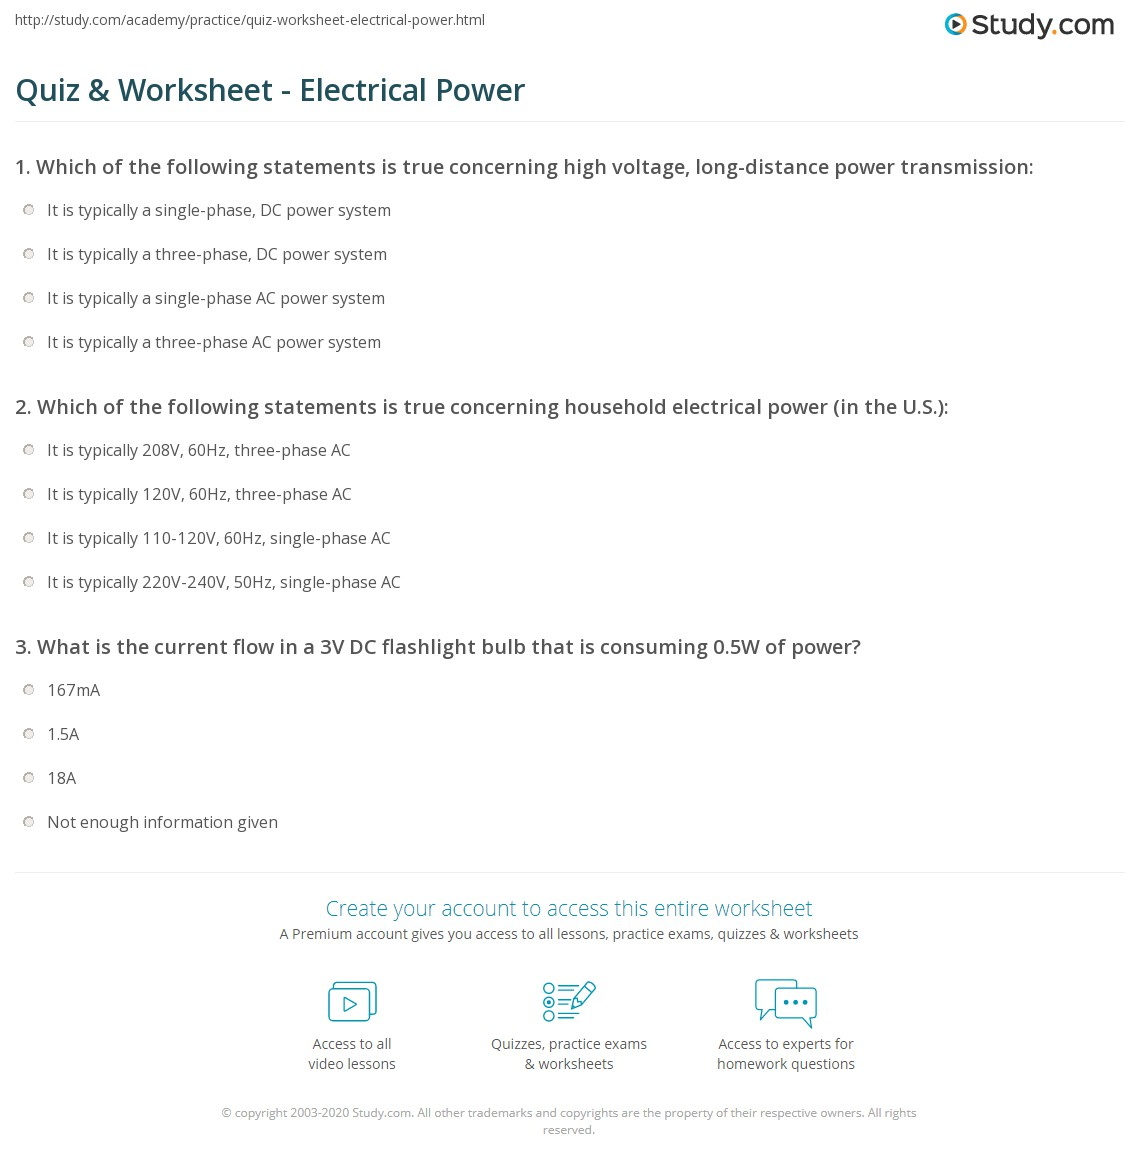 Quiz & Worksheet - Electrical Power | Study.com